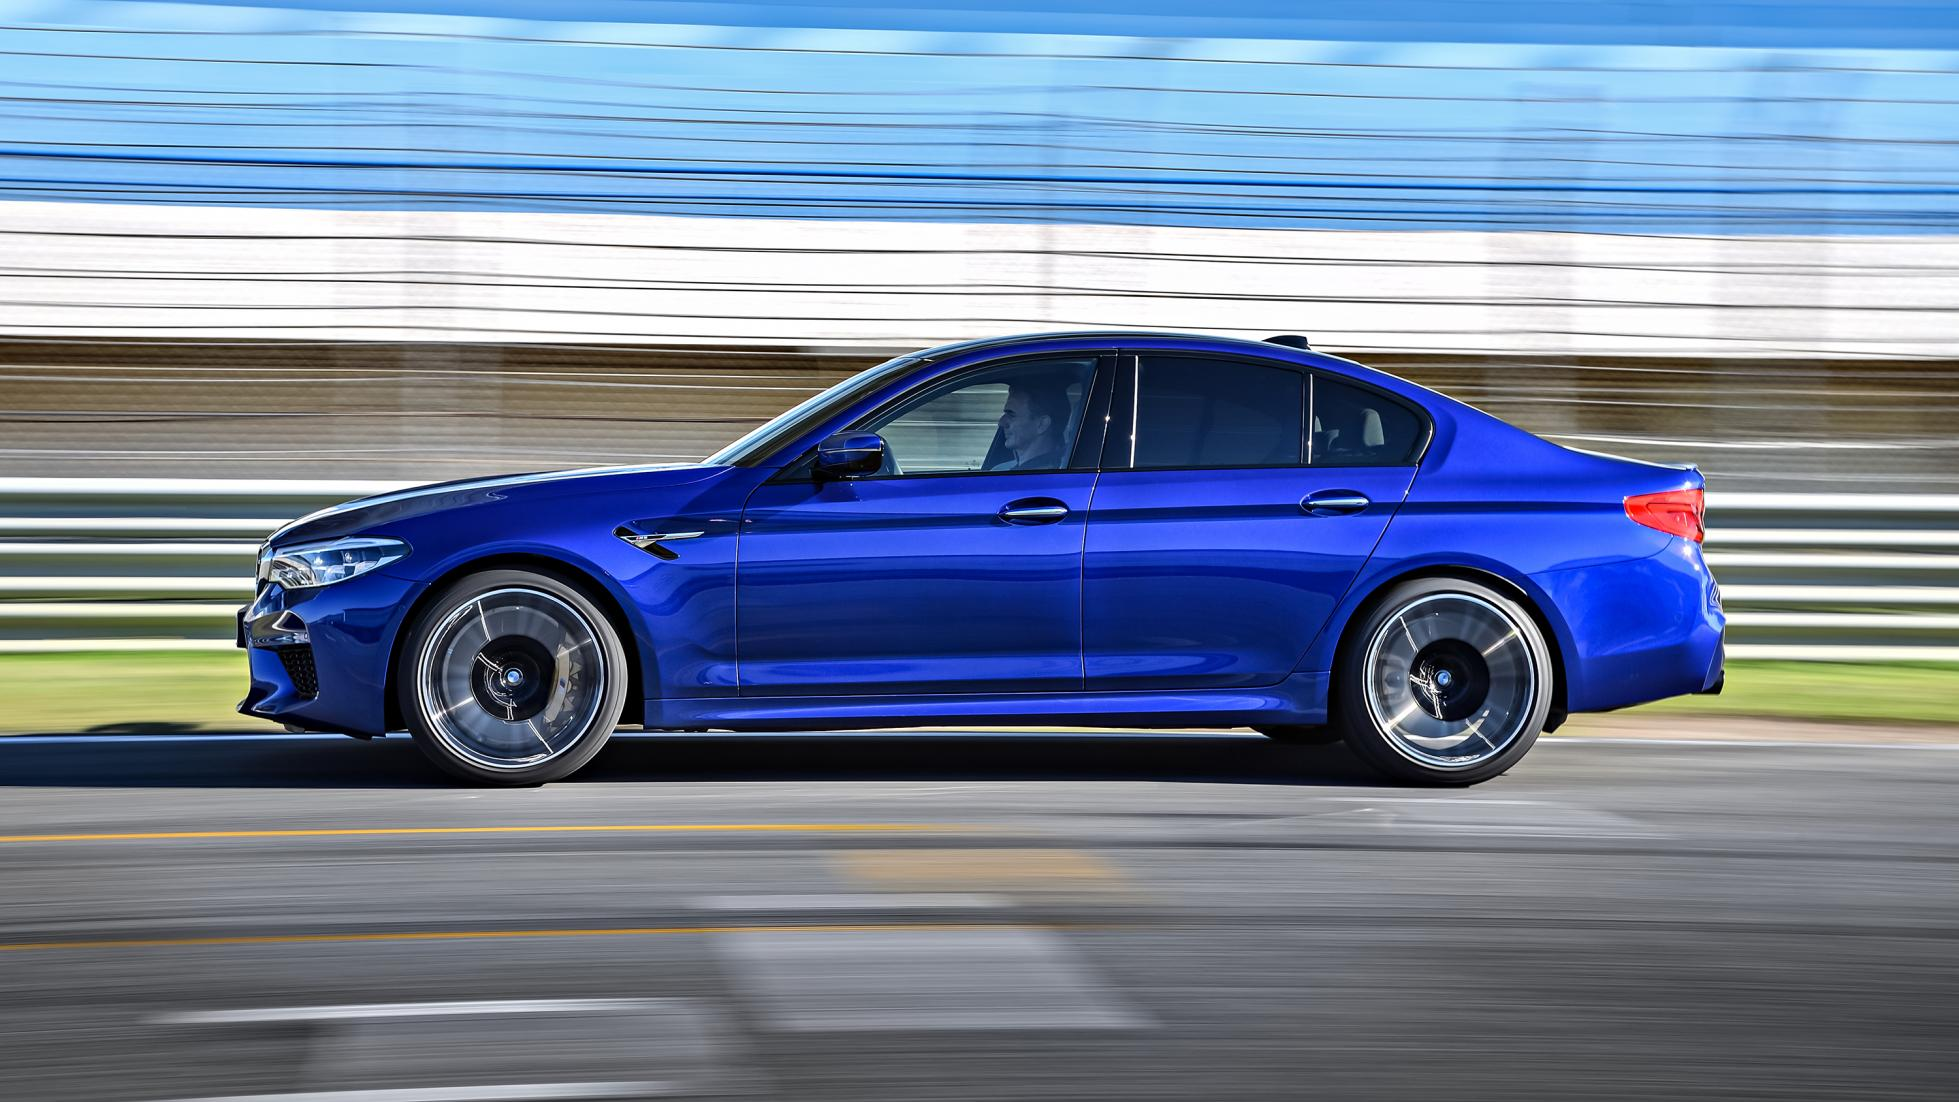 p90286991_highres_the-new-bmw-m5-11-20